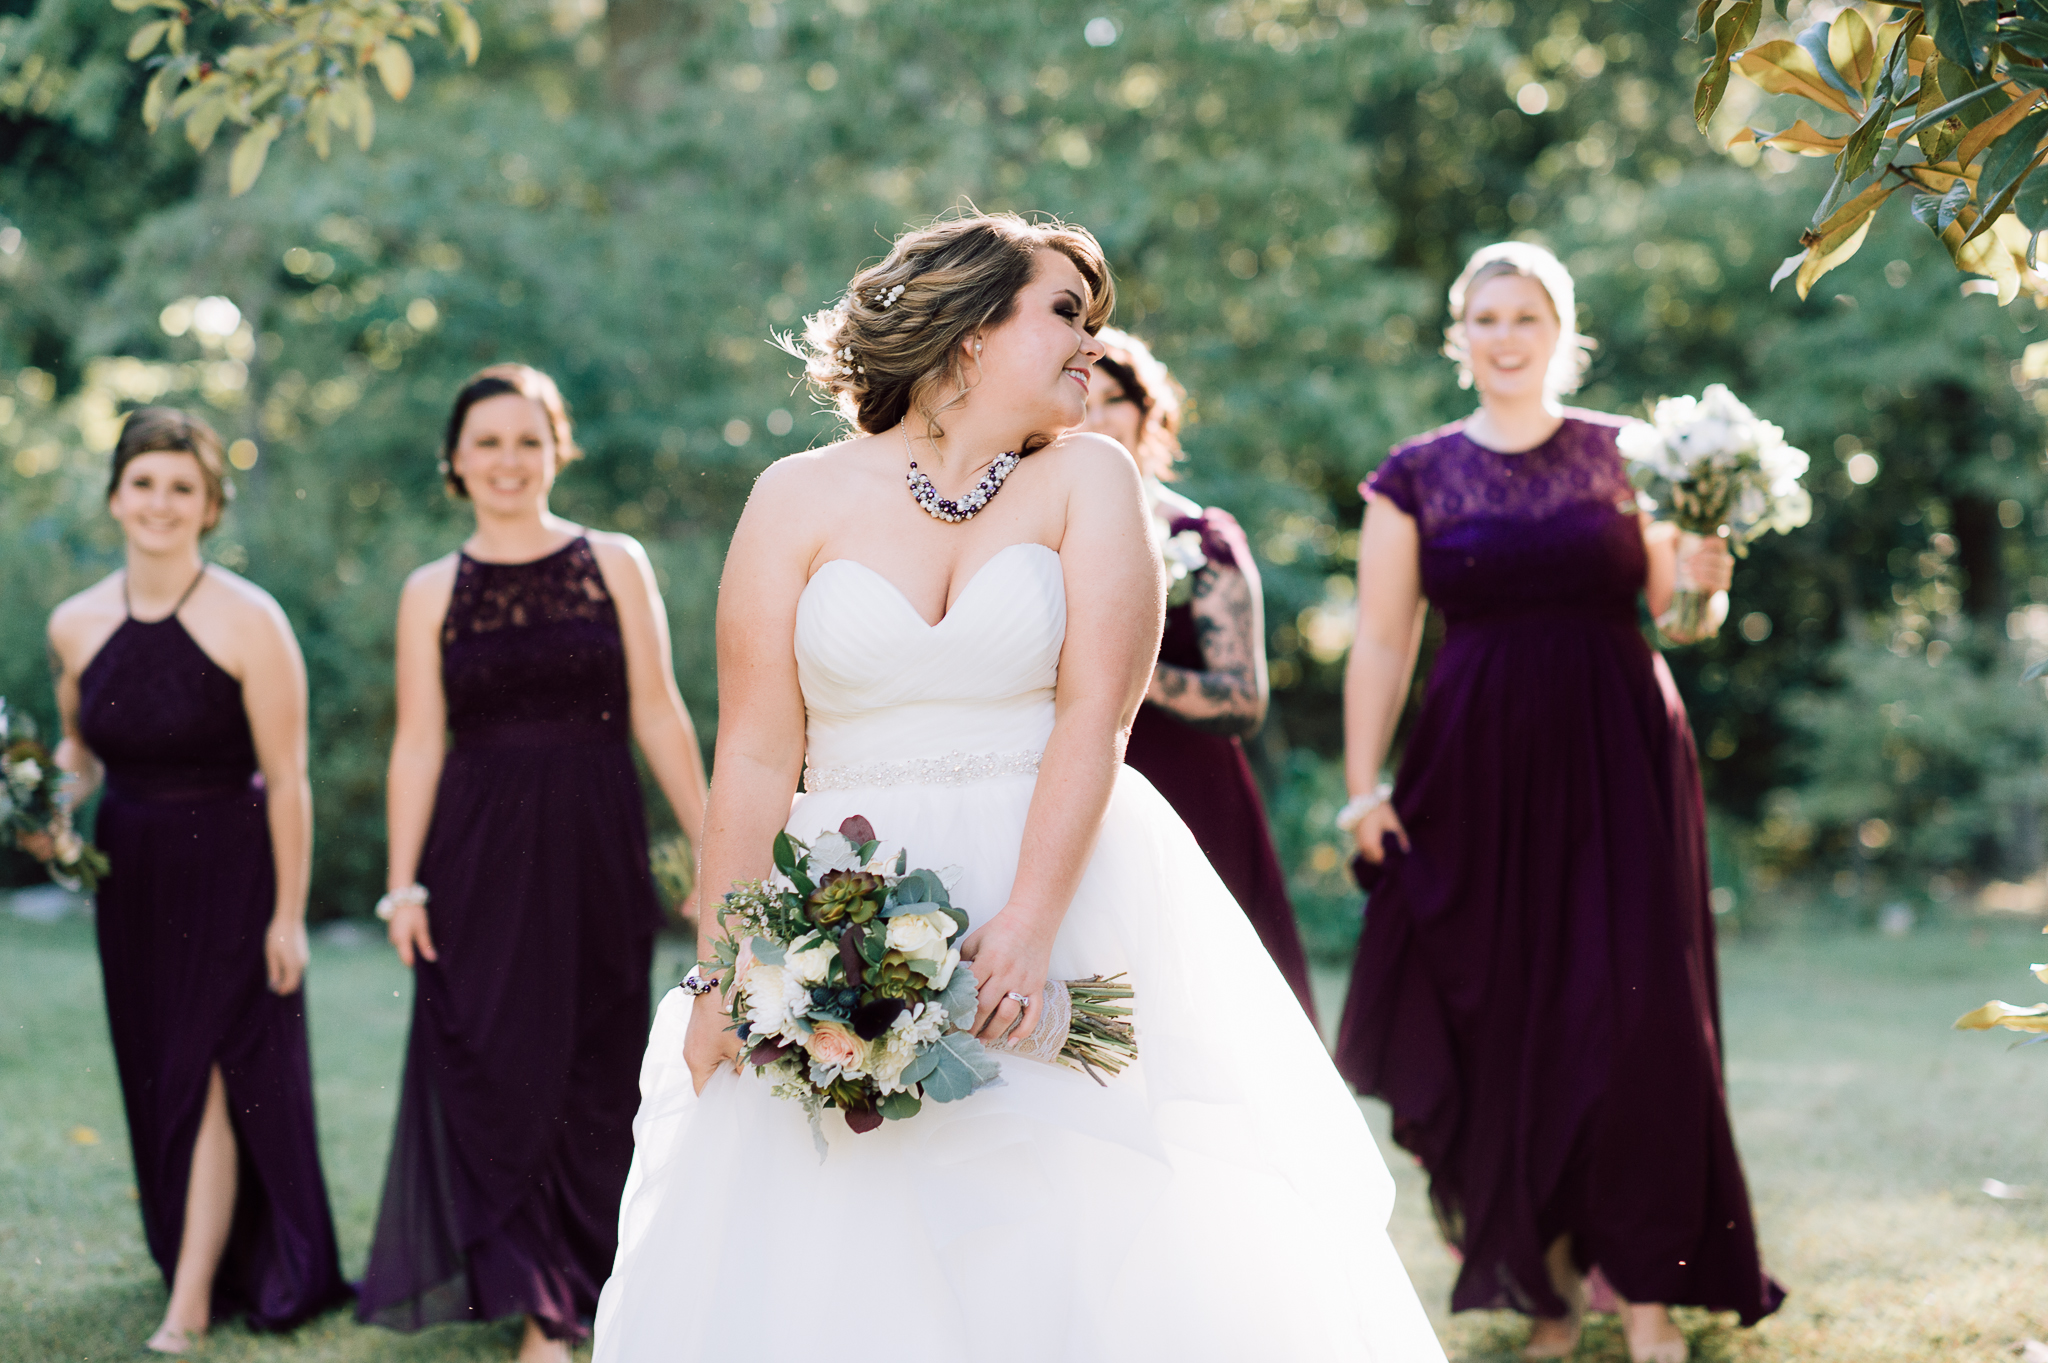 youseephotography_virginiawedding_fall_WallaceManor_EmilyCody (53).jpg